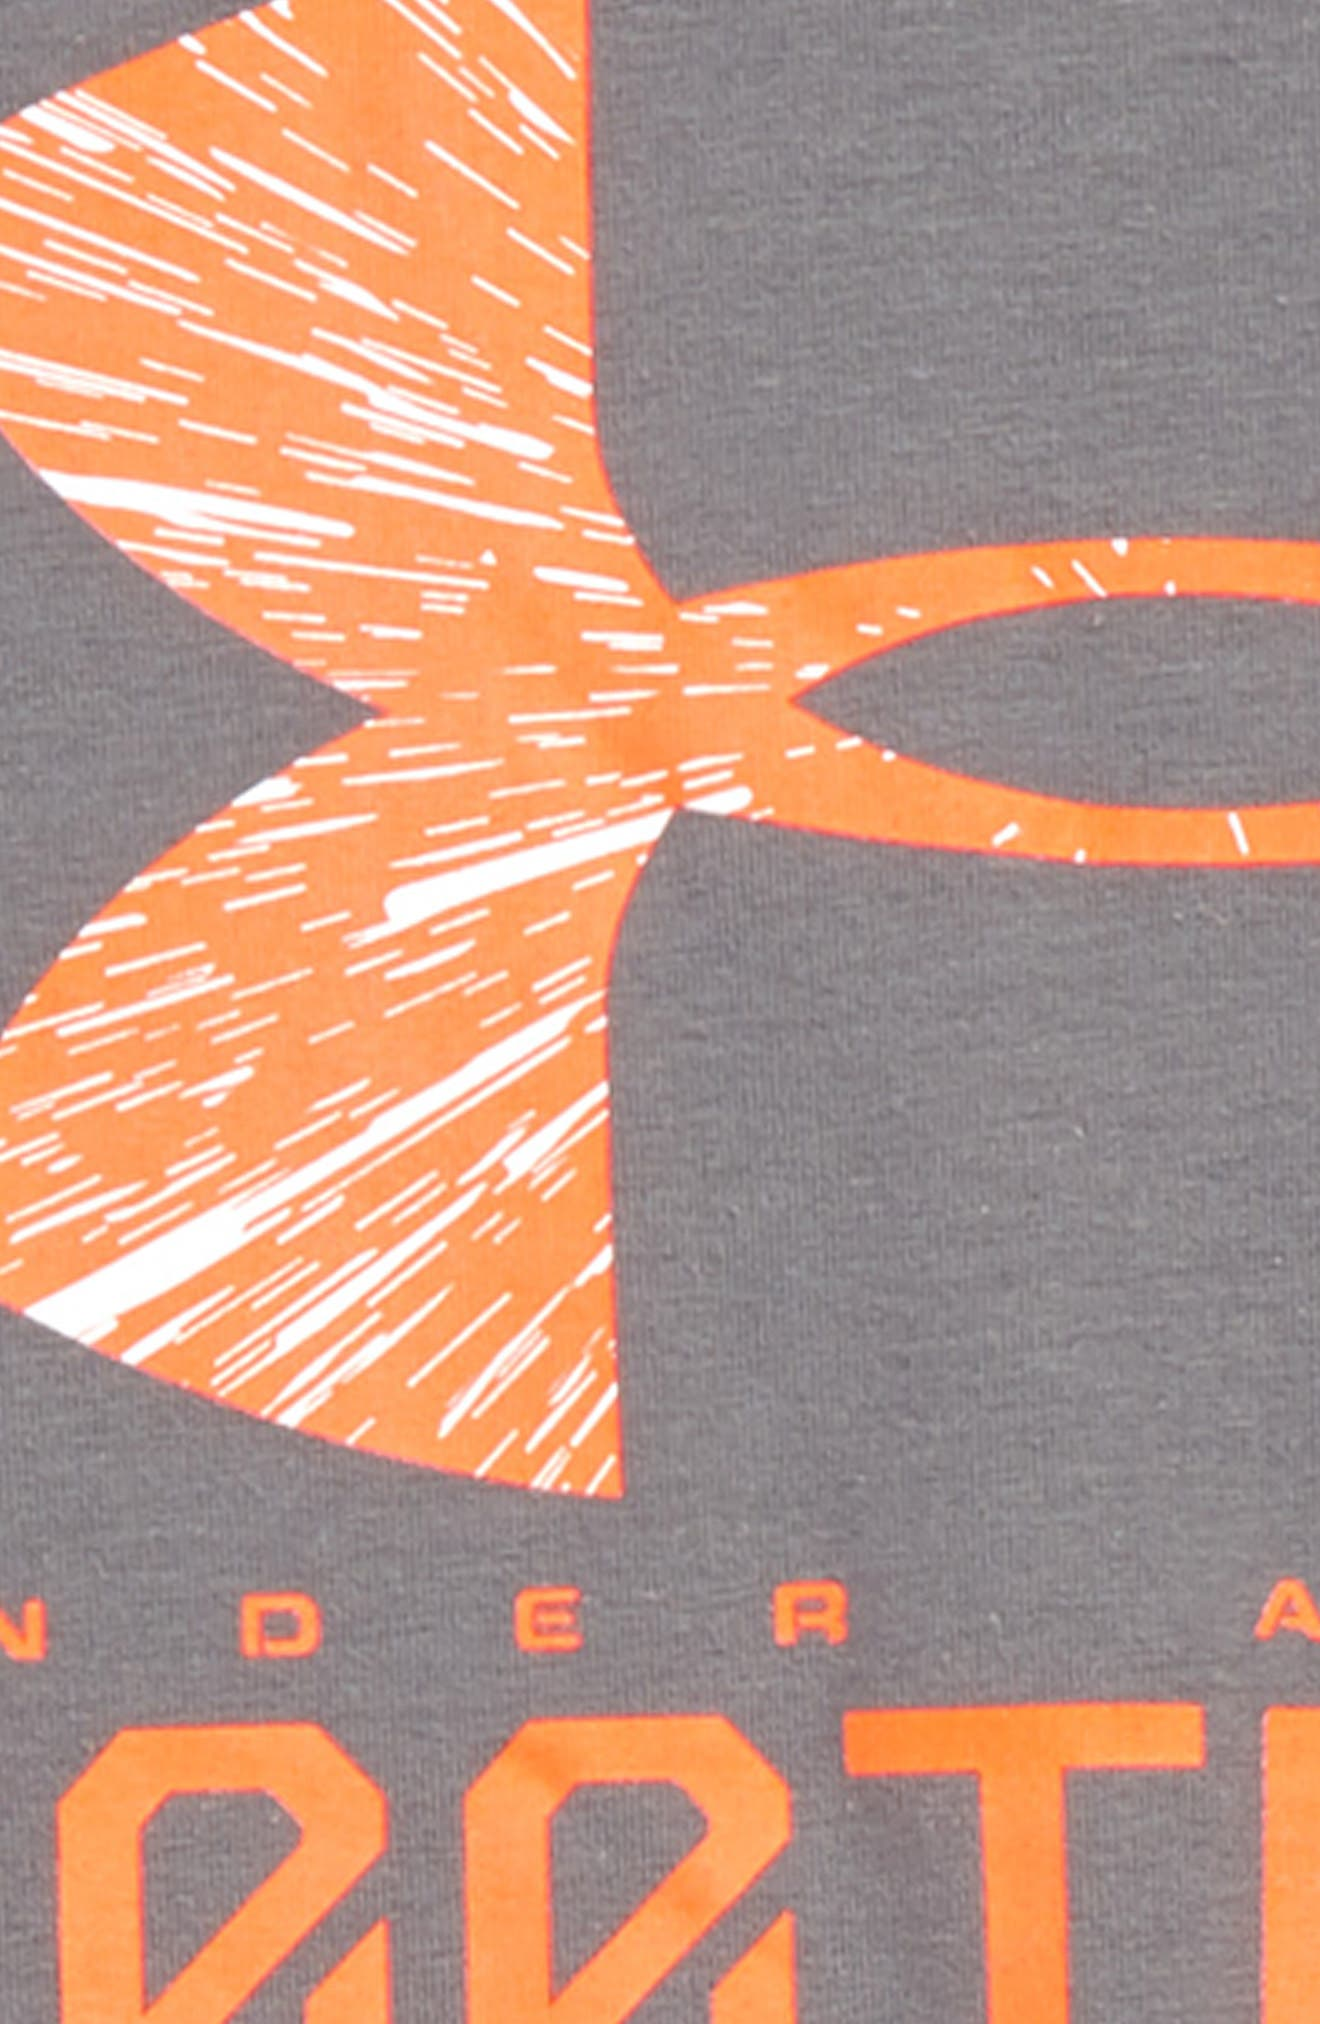 Football Lockup HeatGear<sup>®</sup> Charged Cotton<sup>®</sup> T-Shirt,                             Alternate thumbnail 2, color,                             Graphite/ White